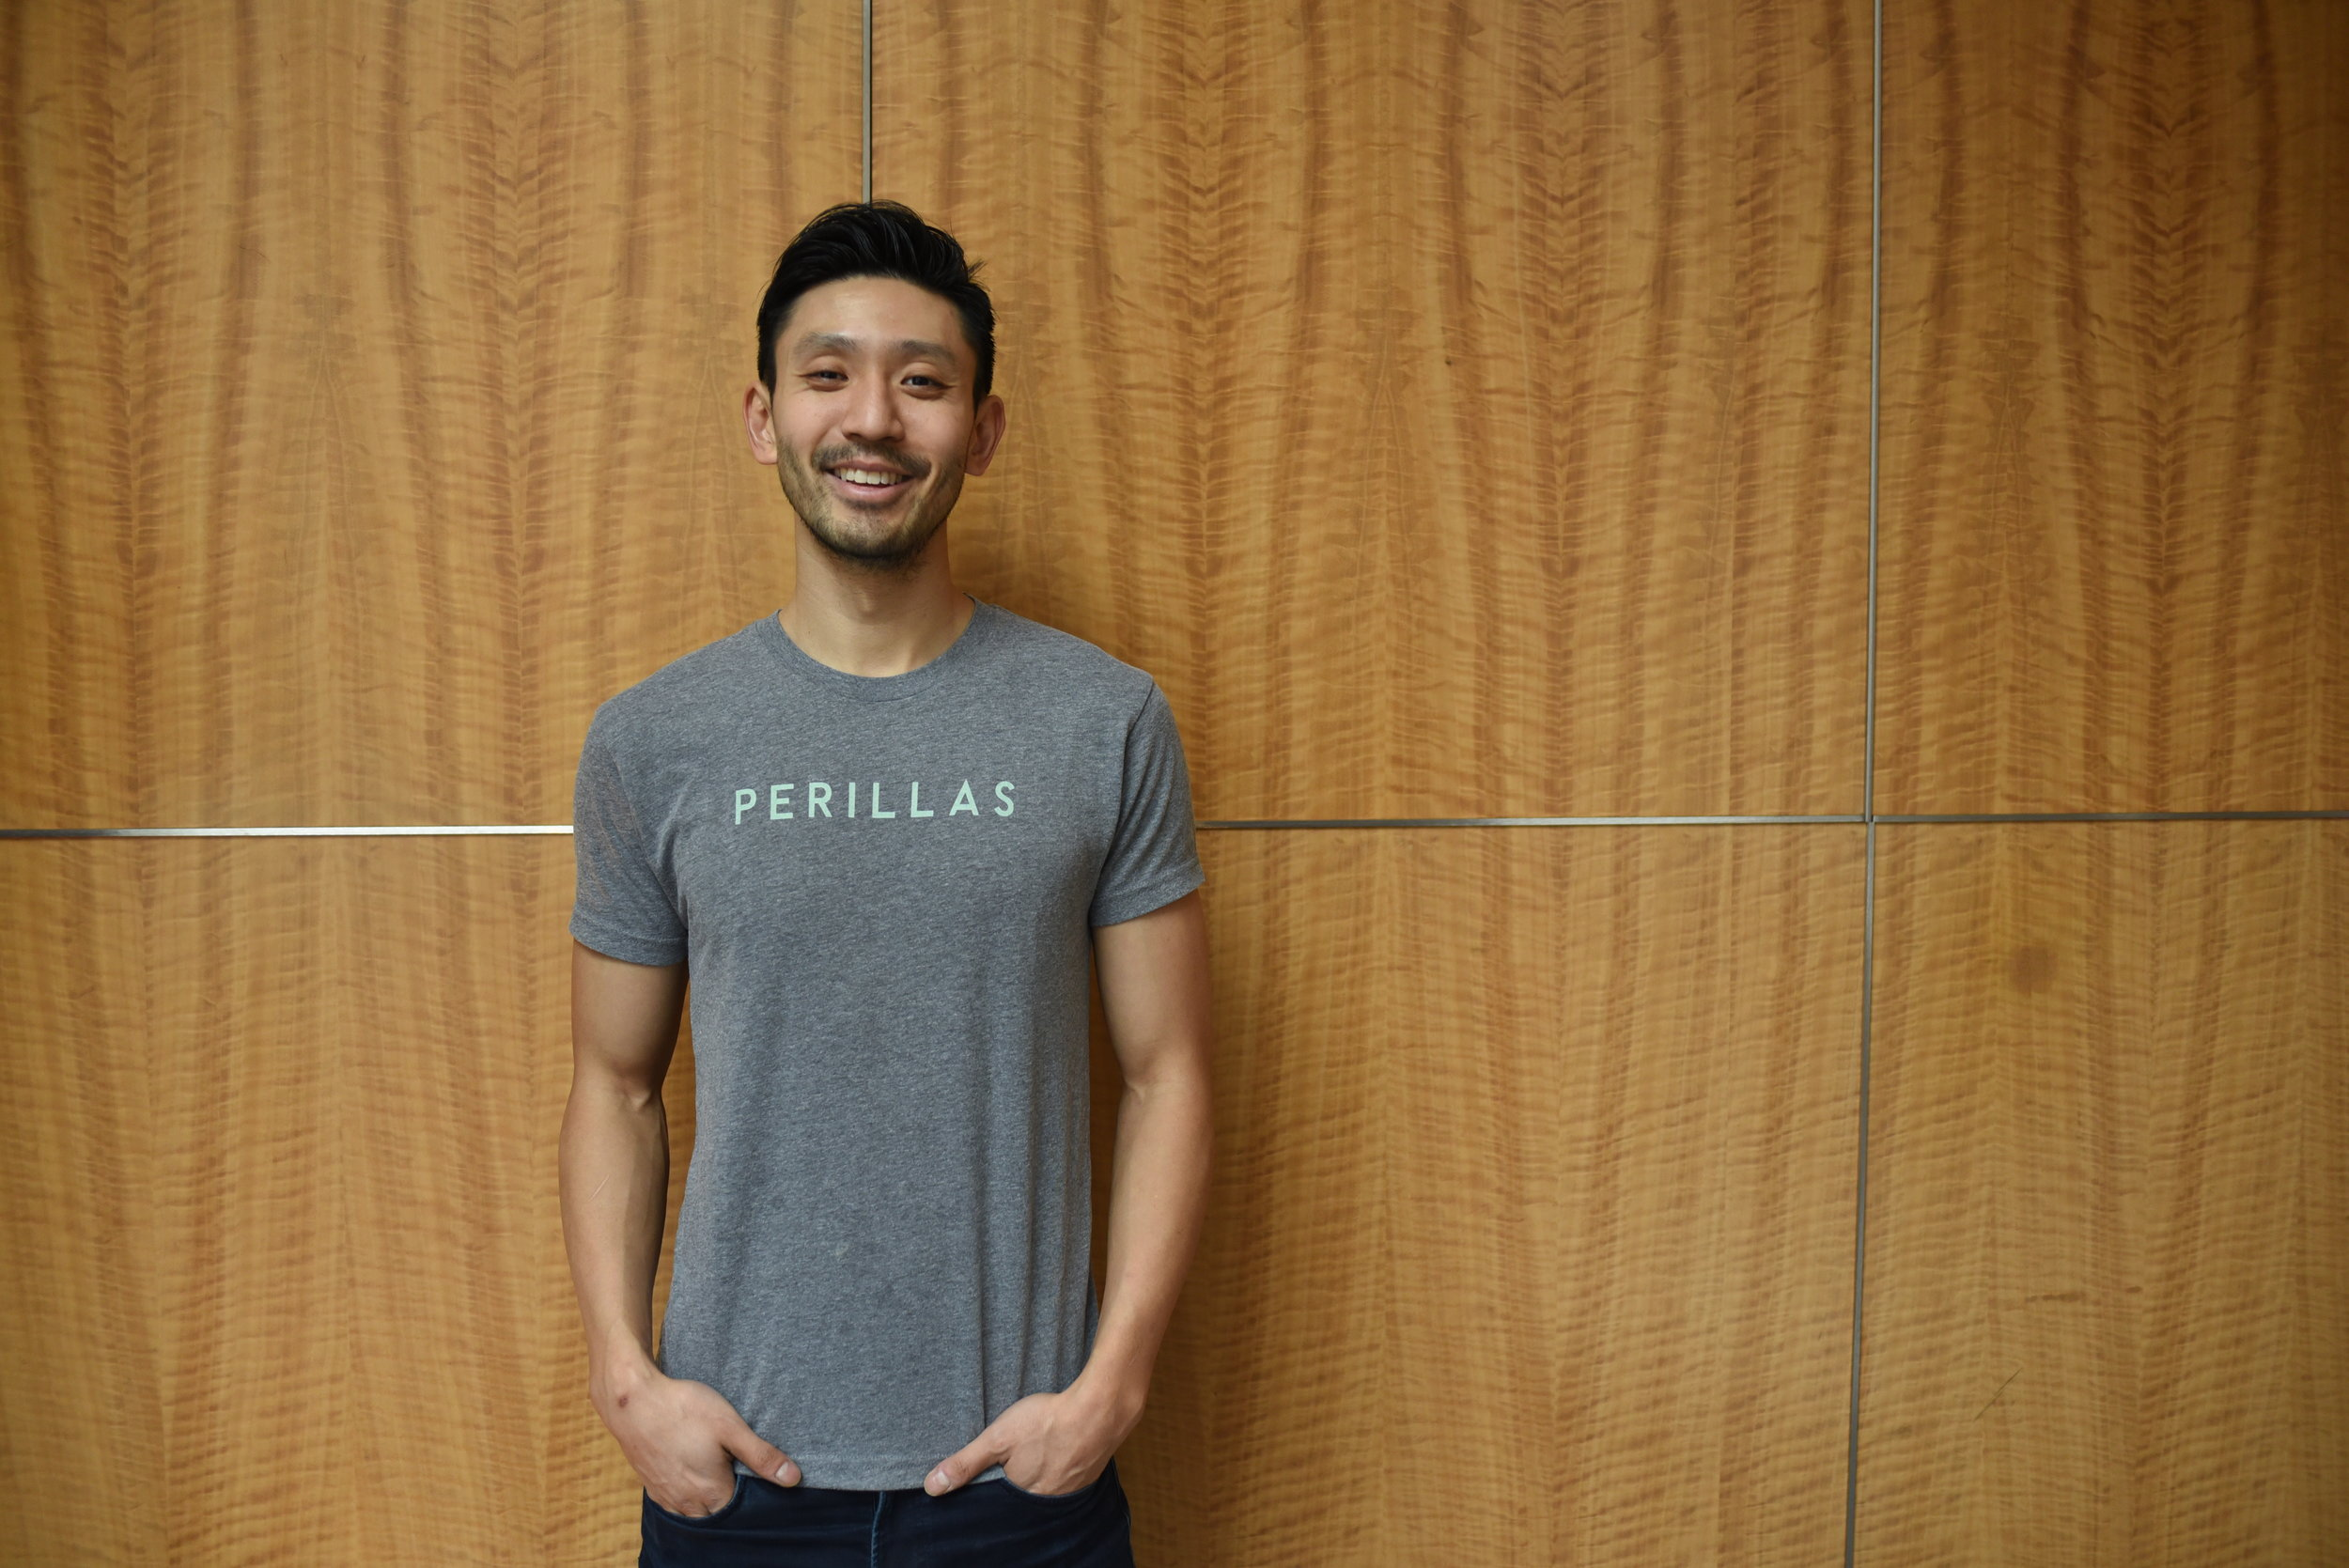 Perillas - started based off of the belief that focusing on people ultimately creates more value than focusing primarily on profits. We want to treat every human being as having dignity and worth. We also want to be good stewards of our resources and opportunities. Oh, and we want to share the joy of delicious Korean food, food that we've come to know and love.